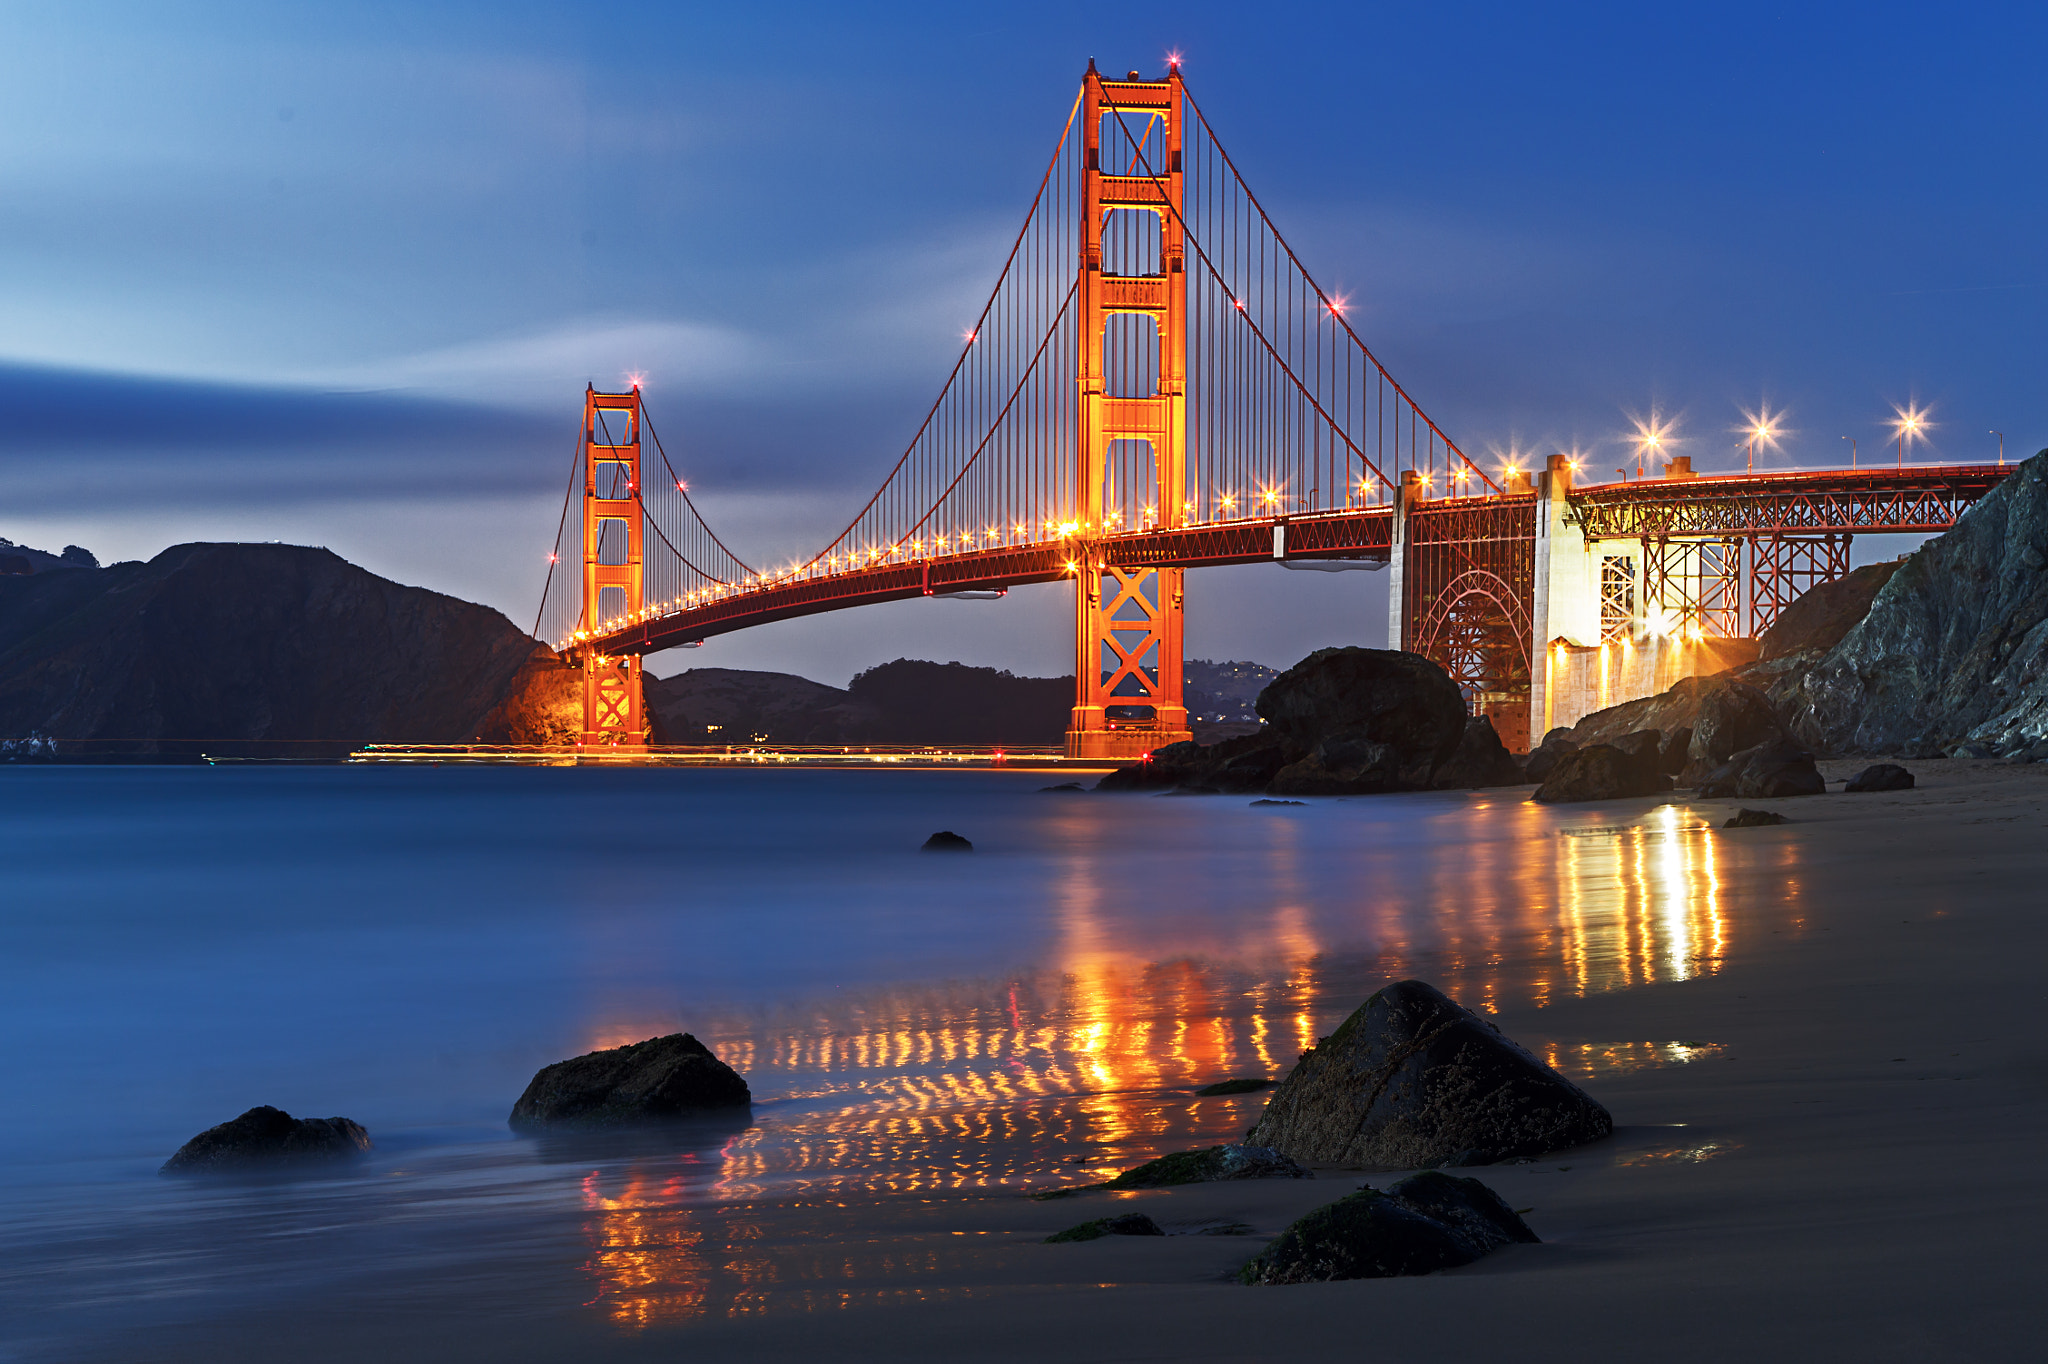 Photograph Golden Gate Bridge: Marshall Beach by KP Tripathi (kps-photo.com) on 500px